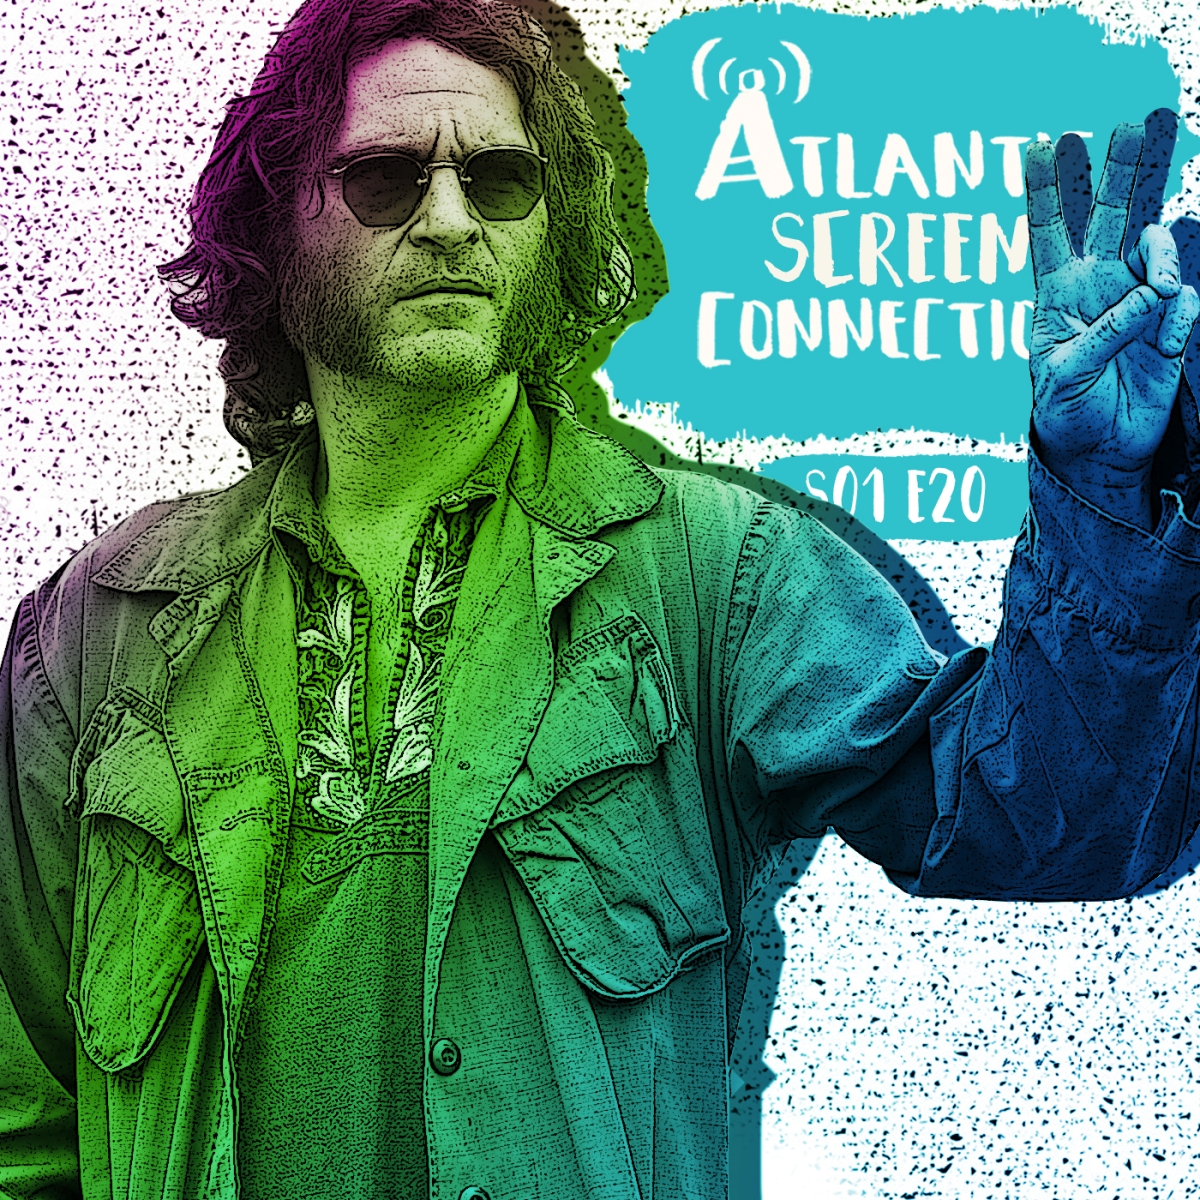 PODCAST: Inherent Vice – Paul Thomas Anderson Retrospective Pt.5 (S01E20)